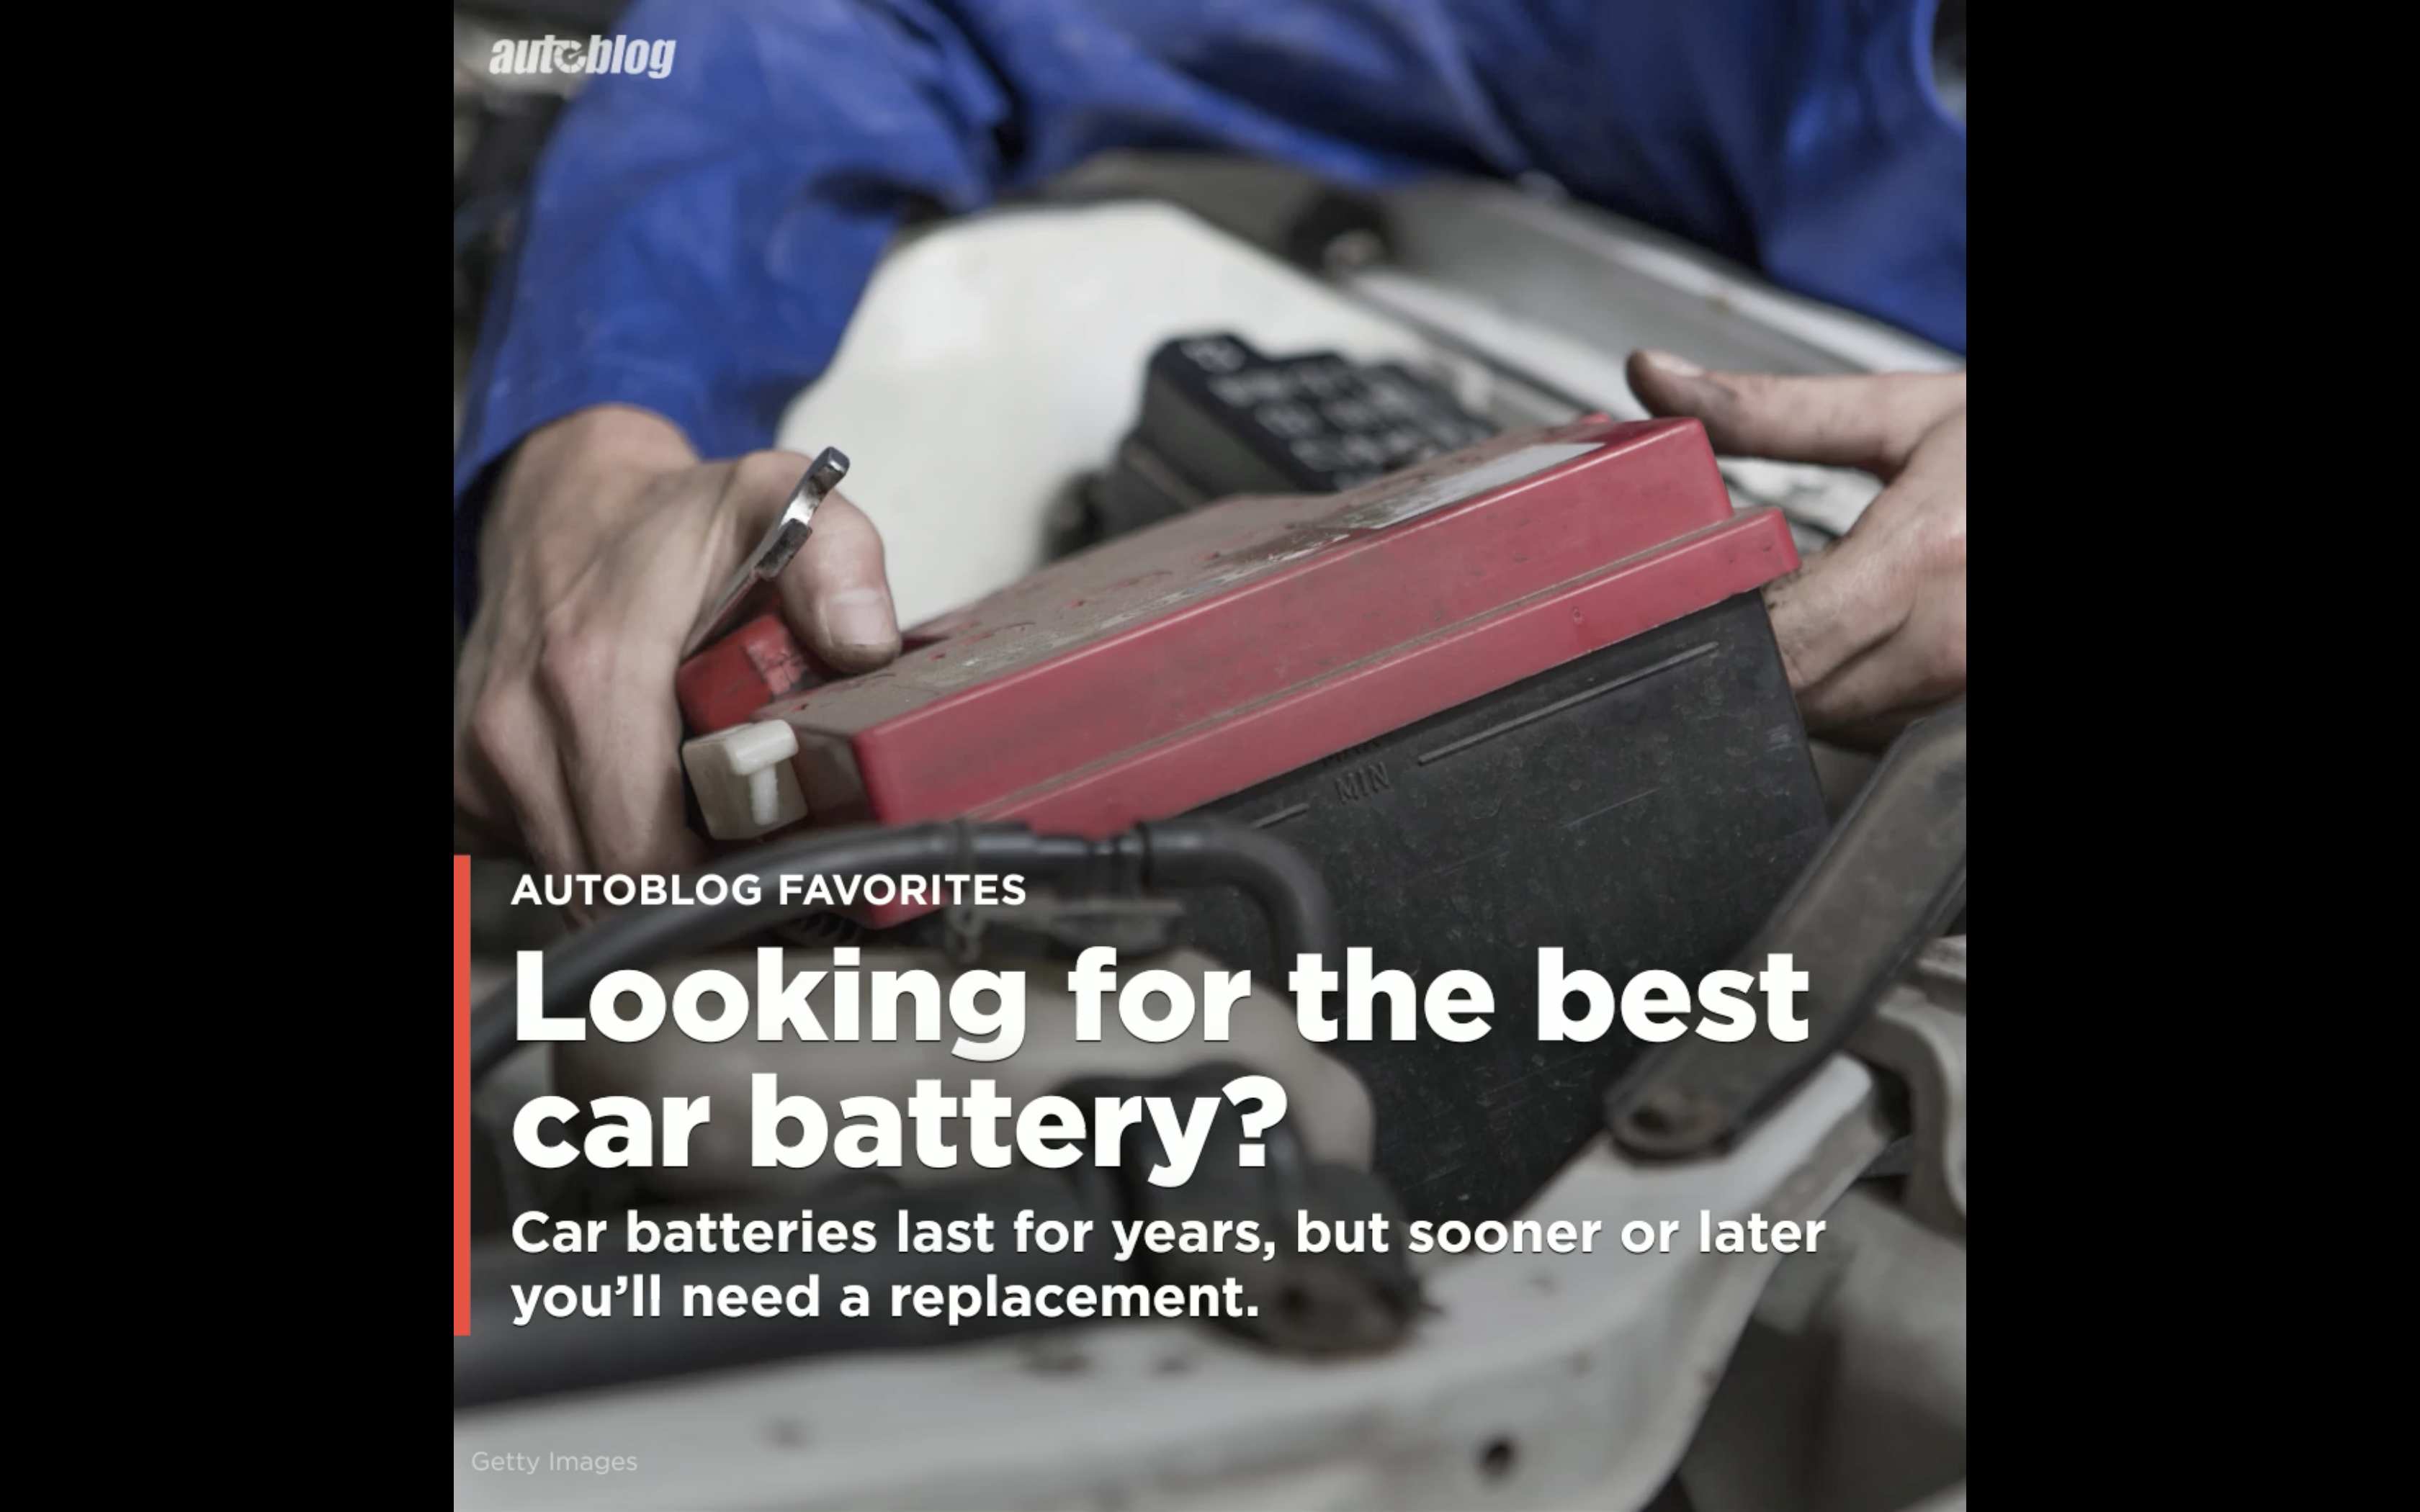 Looking for the best car battery?